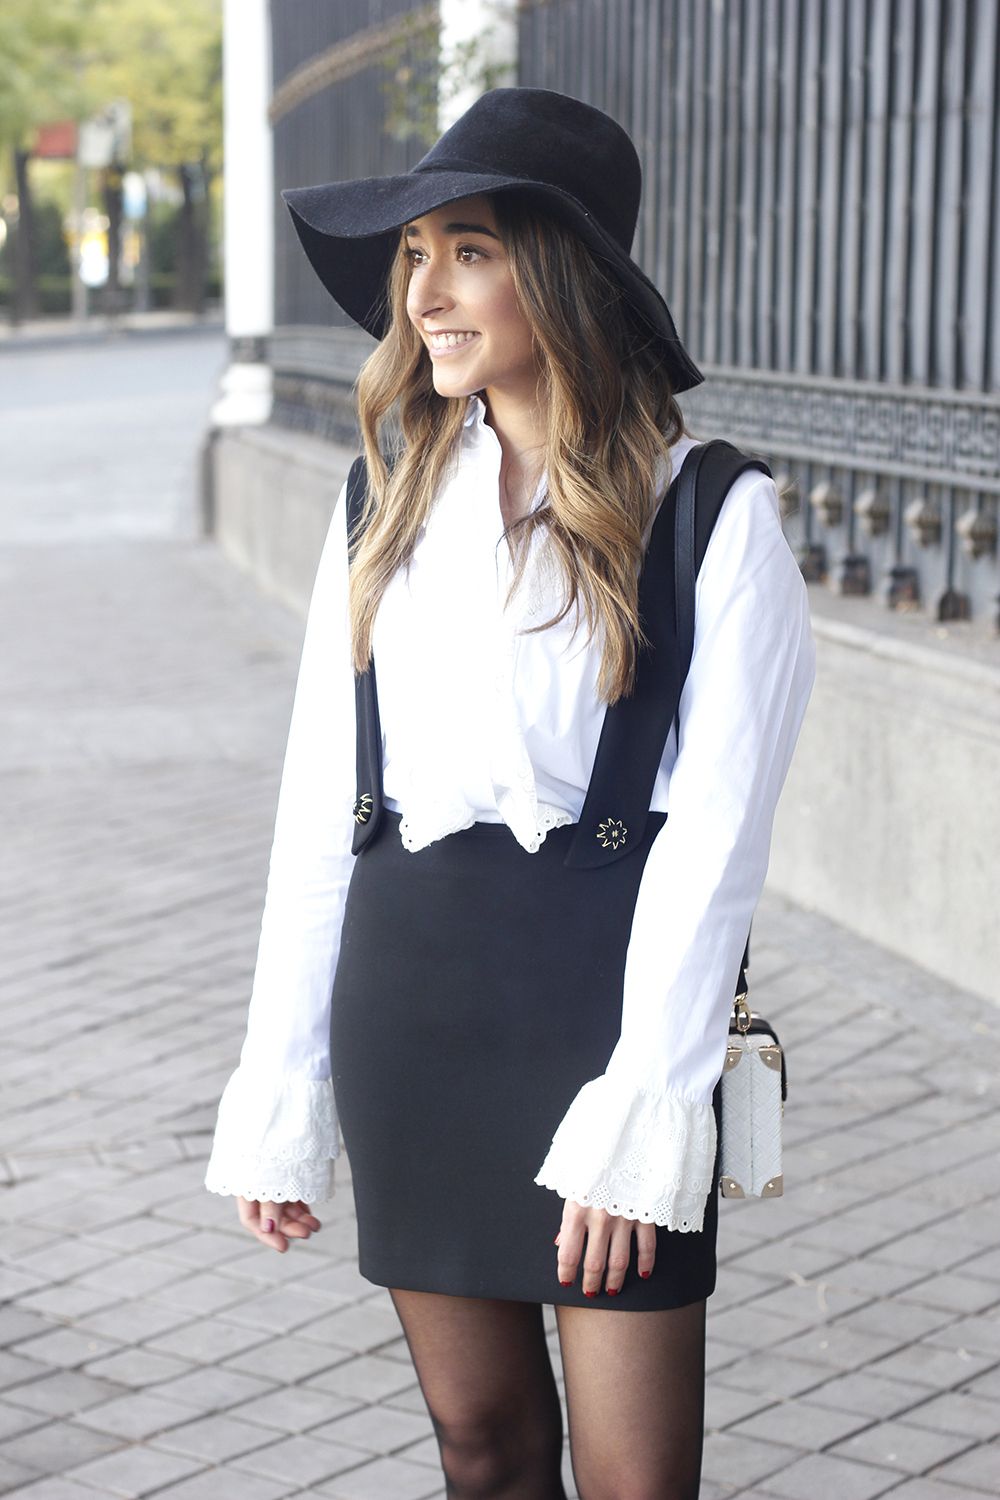 black skirt white shirt black and white outfit trend inspiration hat style fall look blanco y negro12